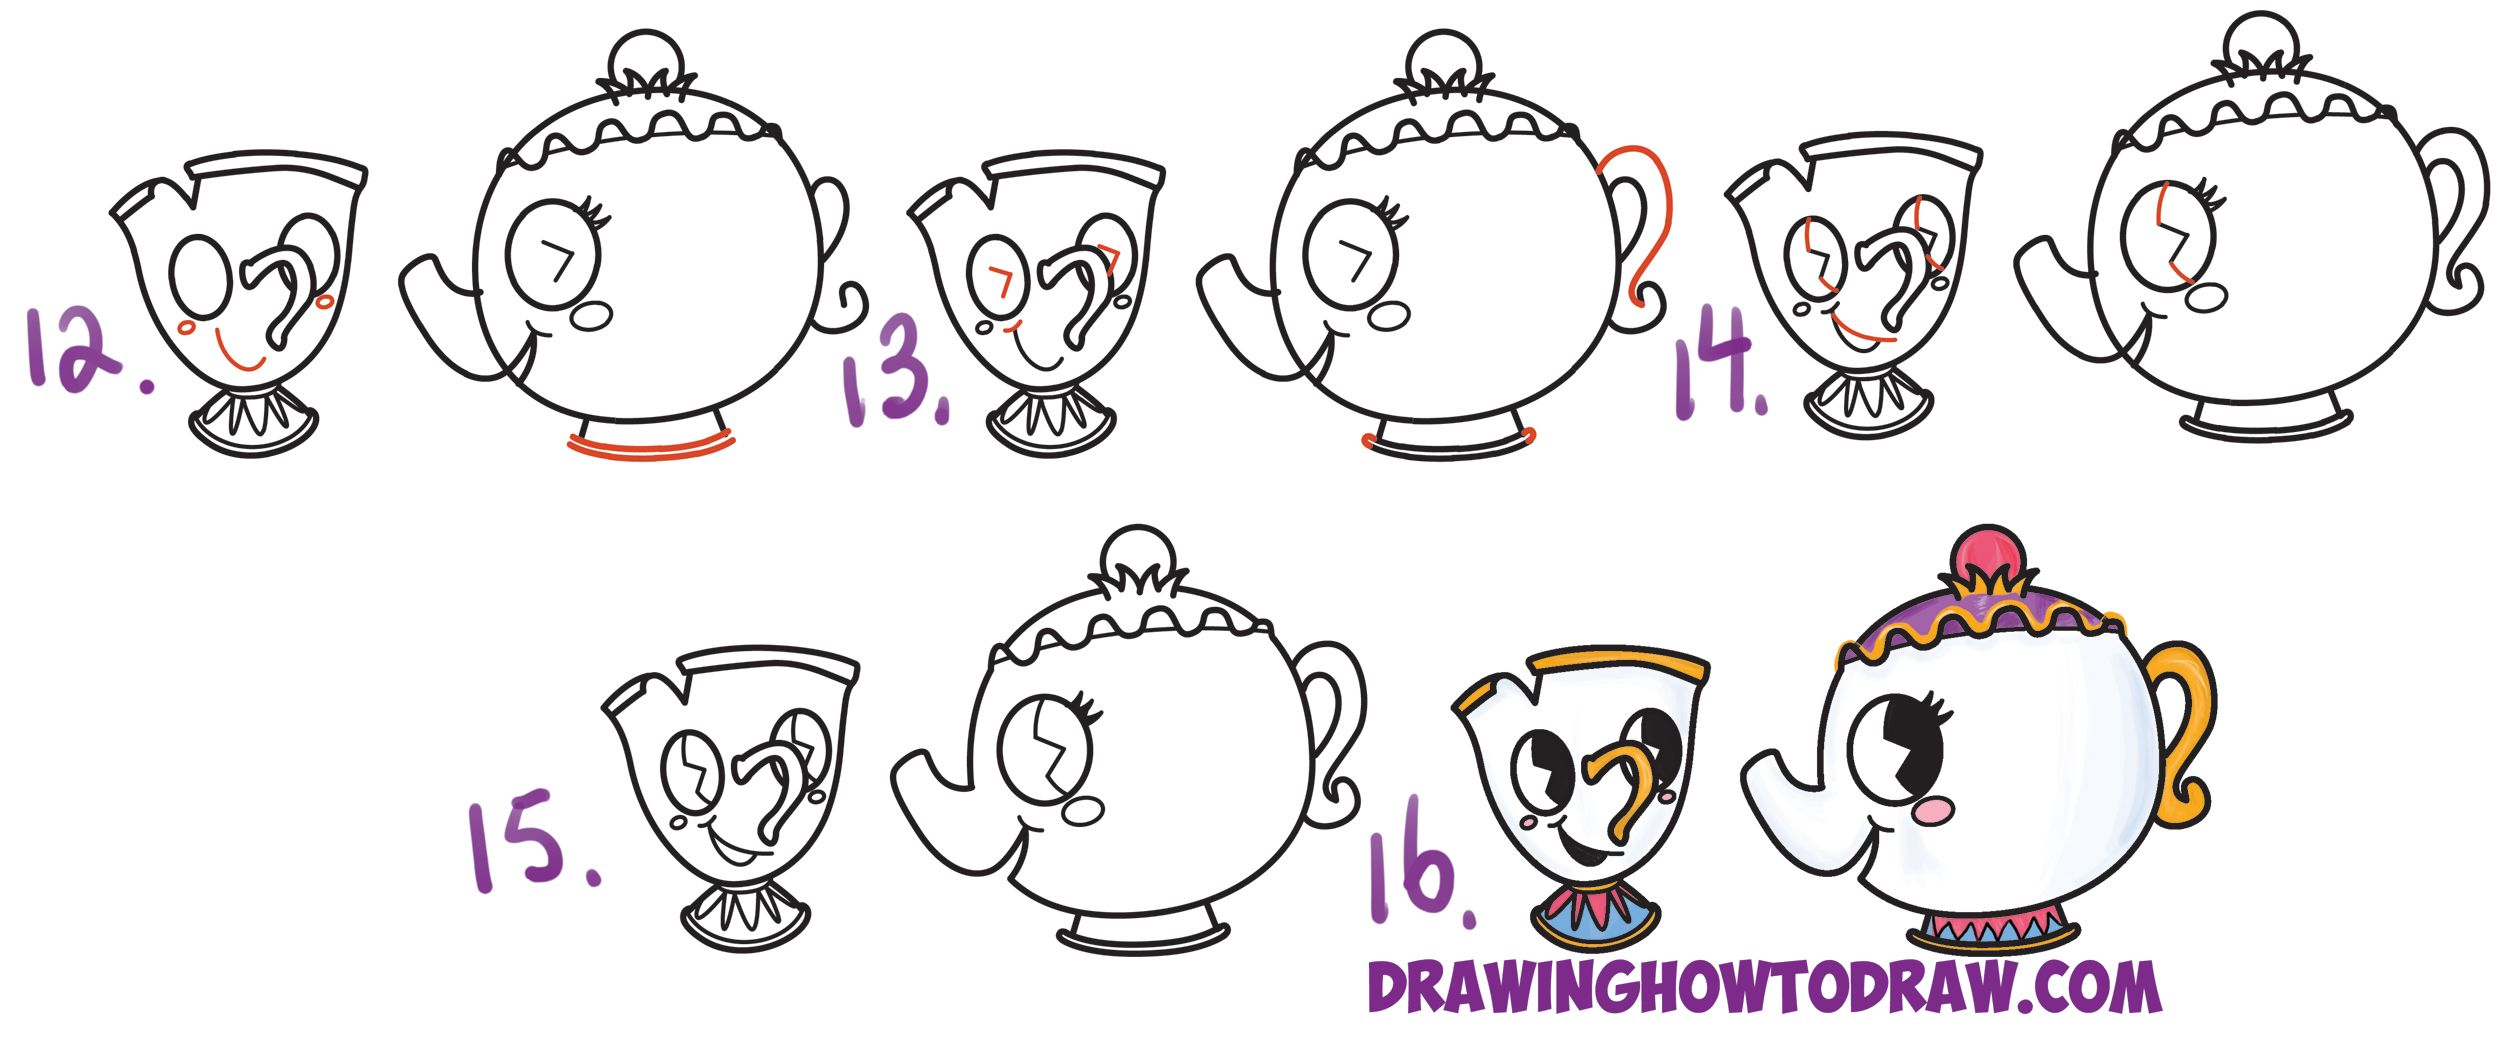 How To Draw Cute Kawaii Chibi Mrs Potts And Chip From Beauty